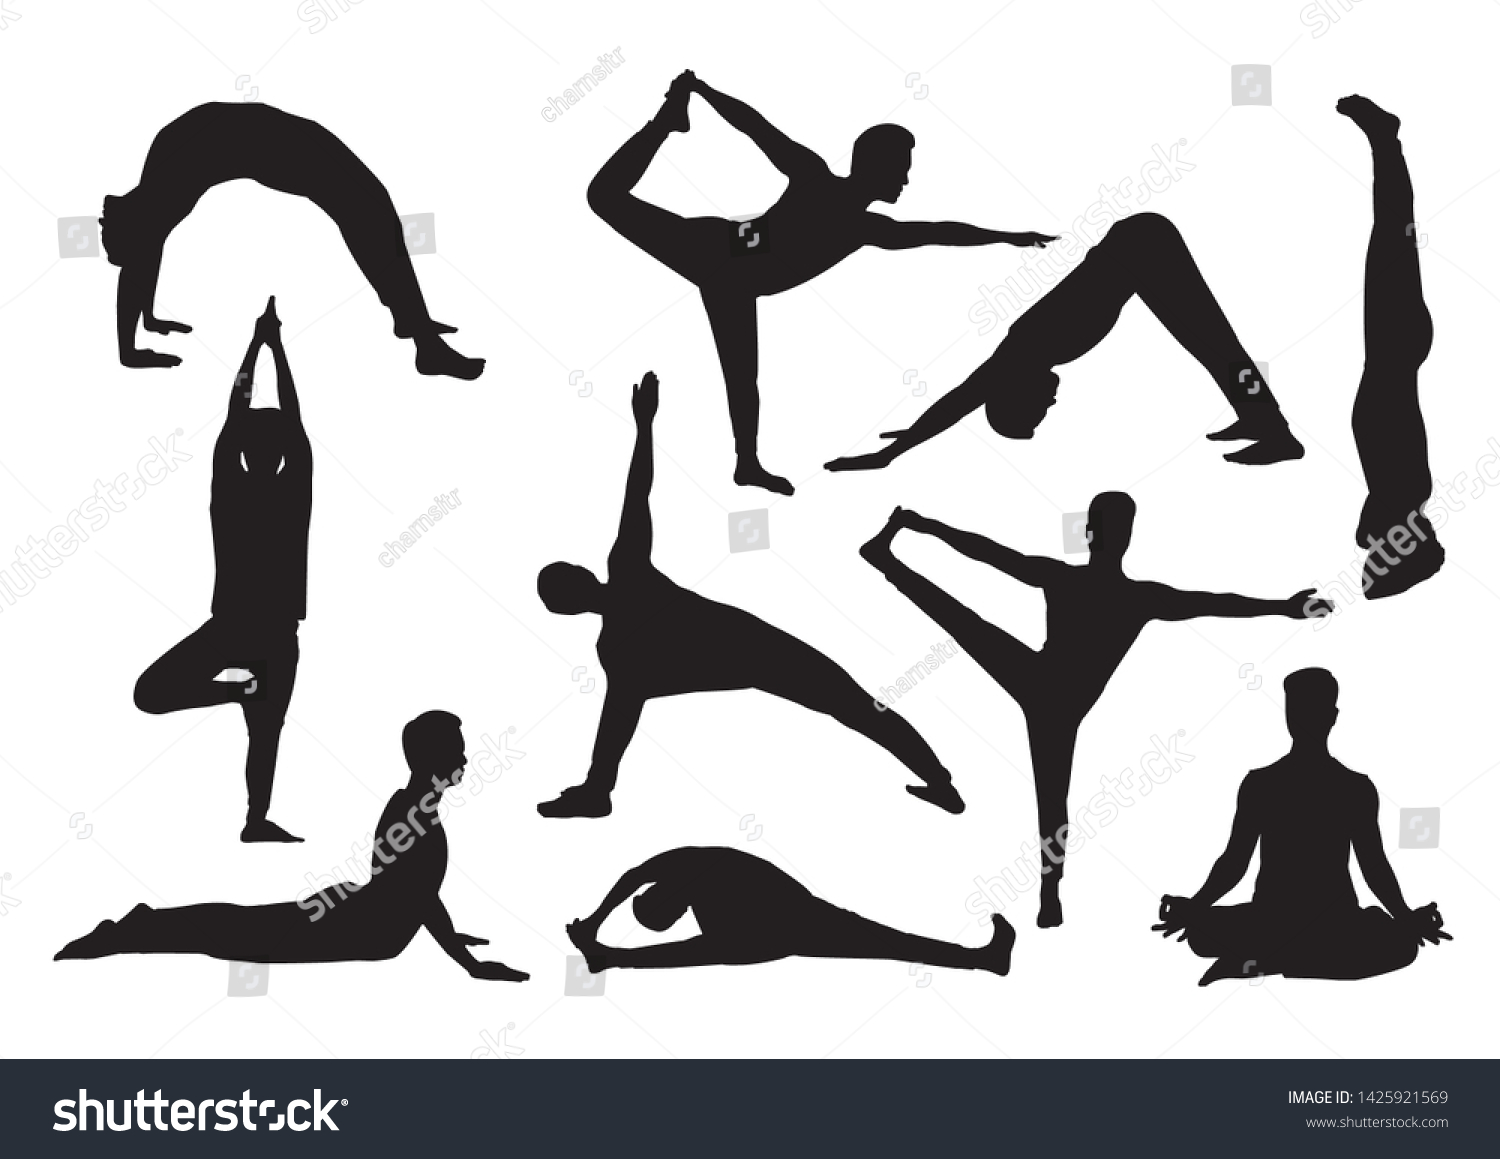 Isolated Silhouette Man Yoga Posture Stock Vector Royalty Free 1425921569